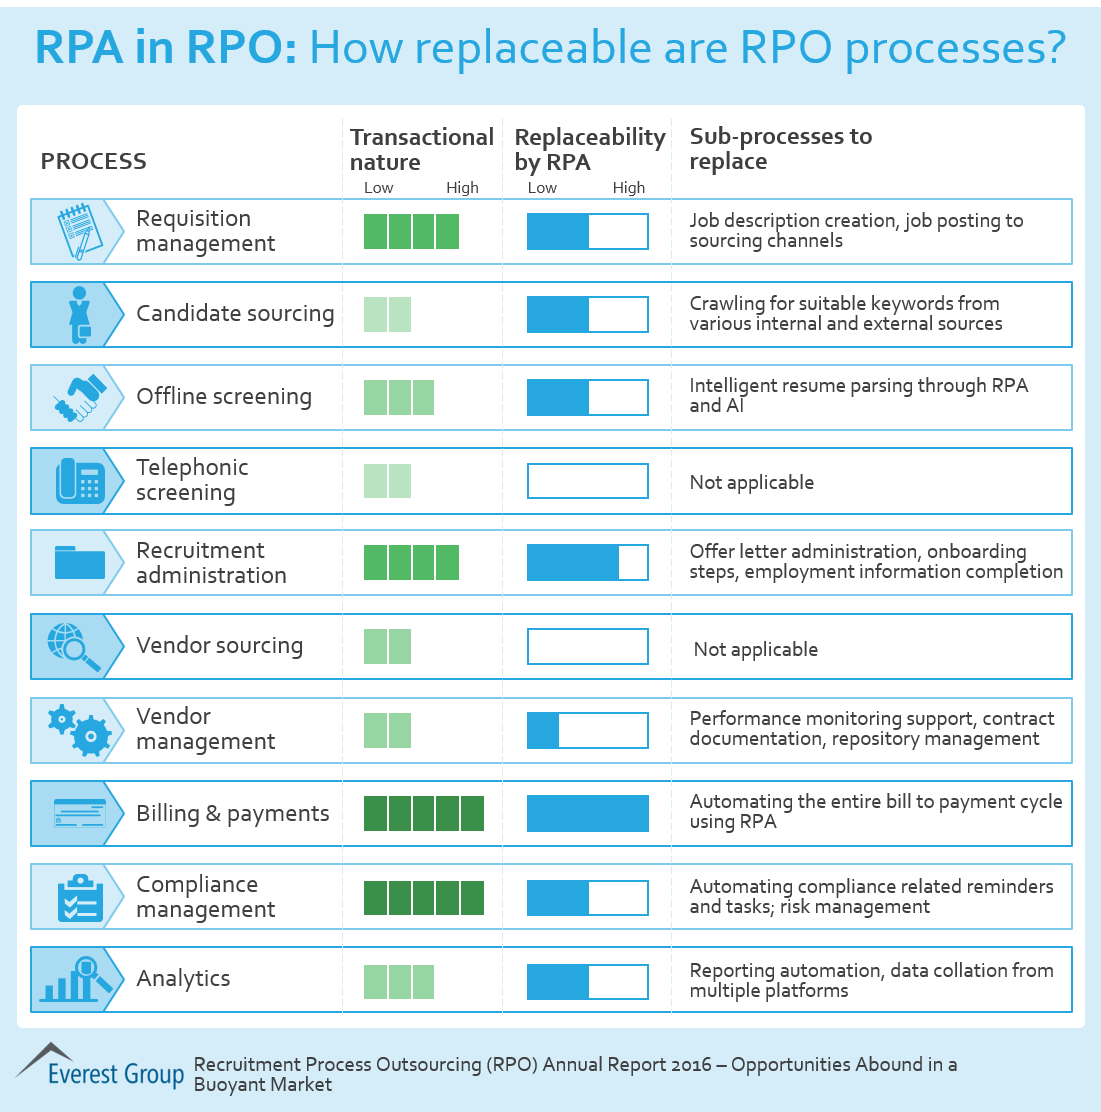 Rpa In Rpo: How Replaceable Are Rpo Processes? | Market Insights™